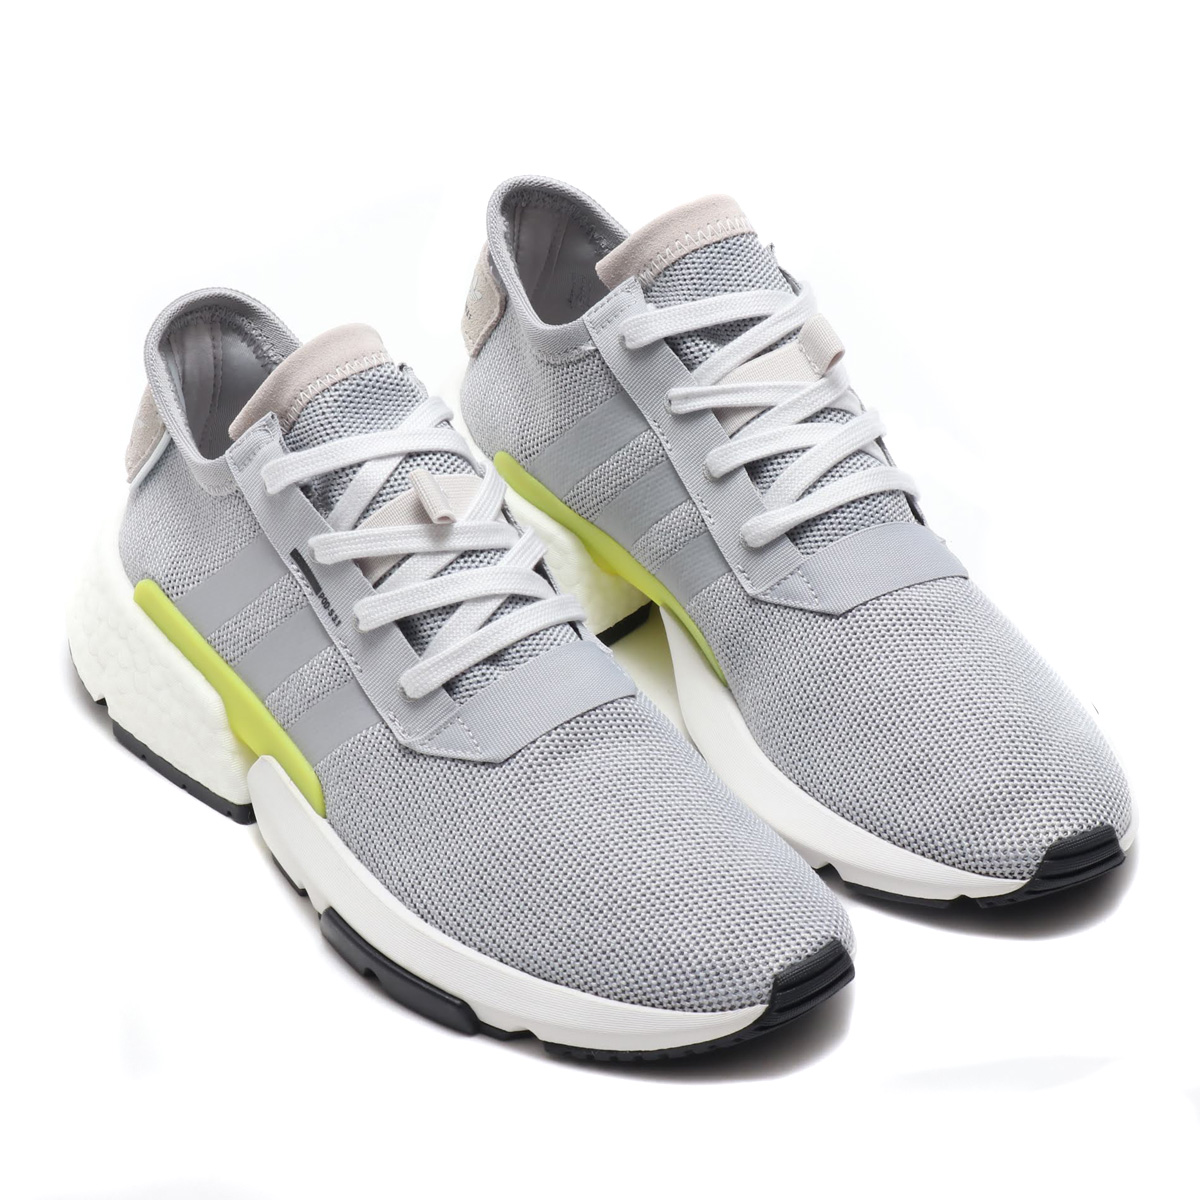 8a74c46f7e45 atmos pink  adidas POD-S3.1 (アディダスピーオーディー S3.1) gray TWO ...